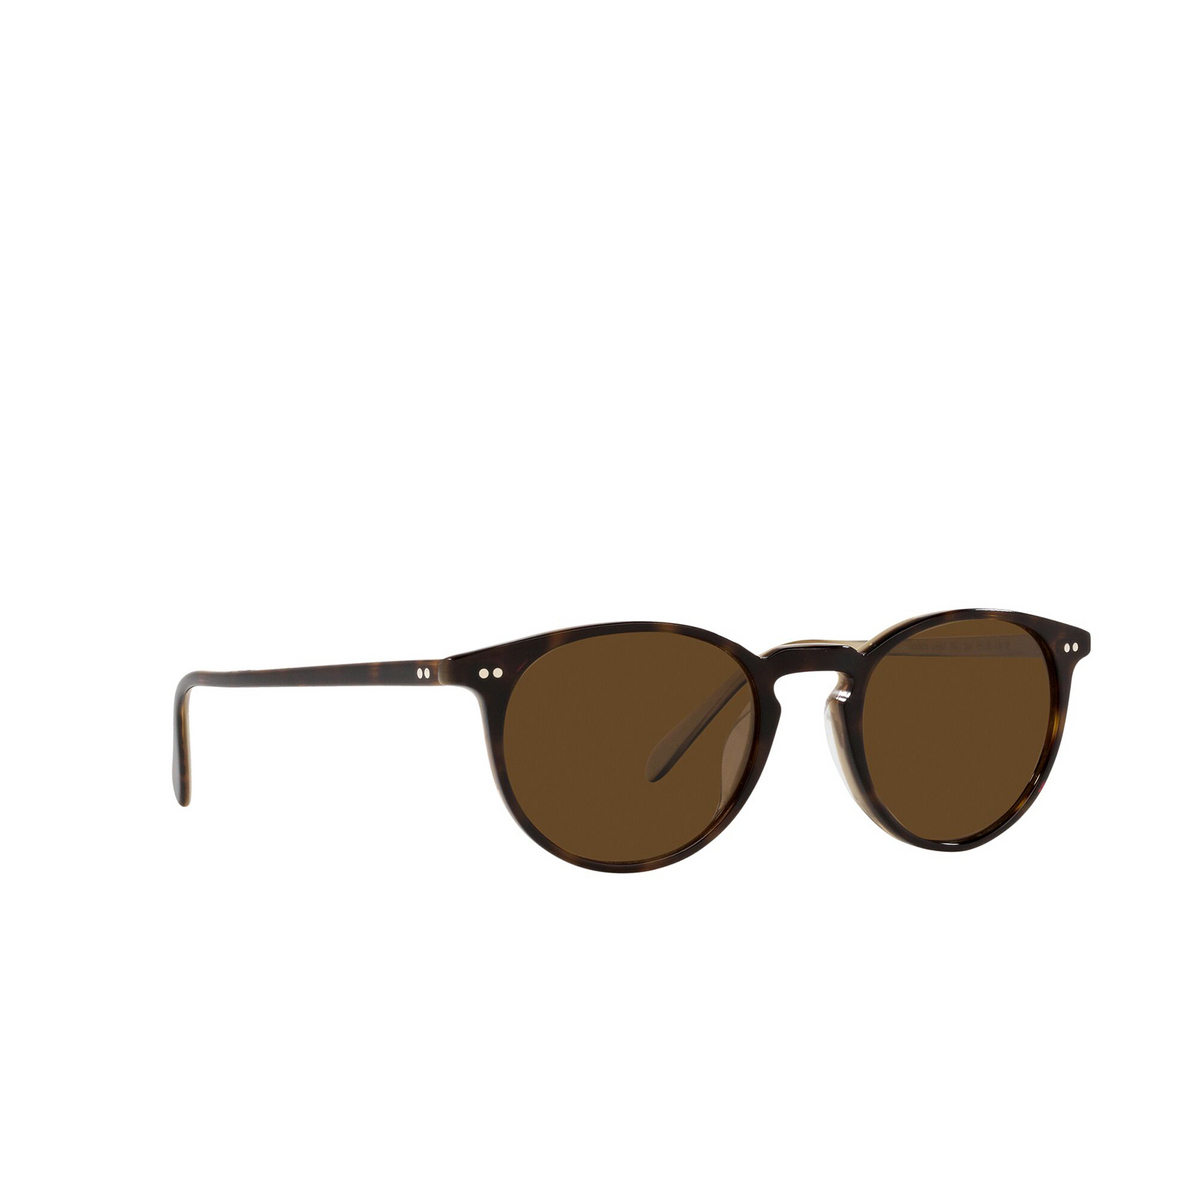 Oliver Peoples® Round Sunglasses: Riley Sun OV5004SU color 362 / Horn 166657 - three-quarters view.